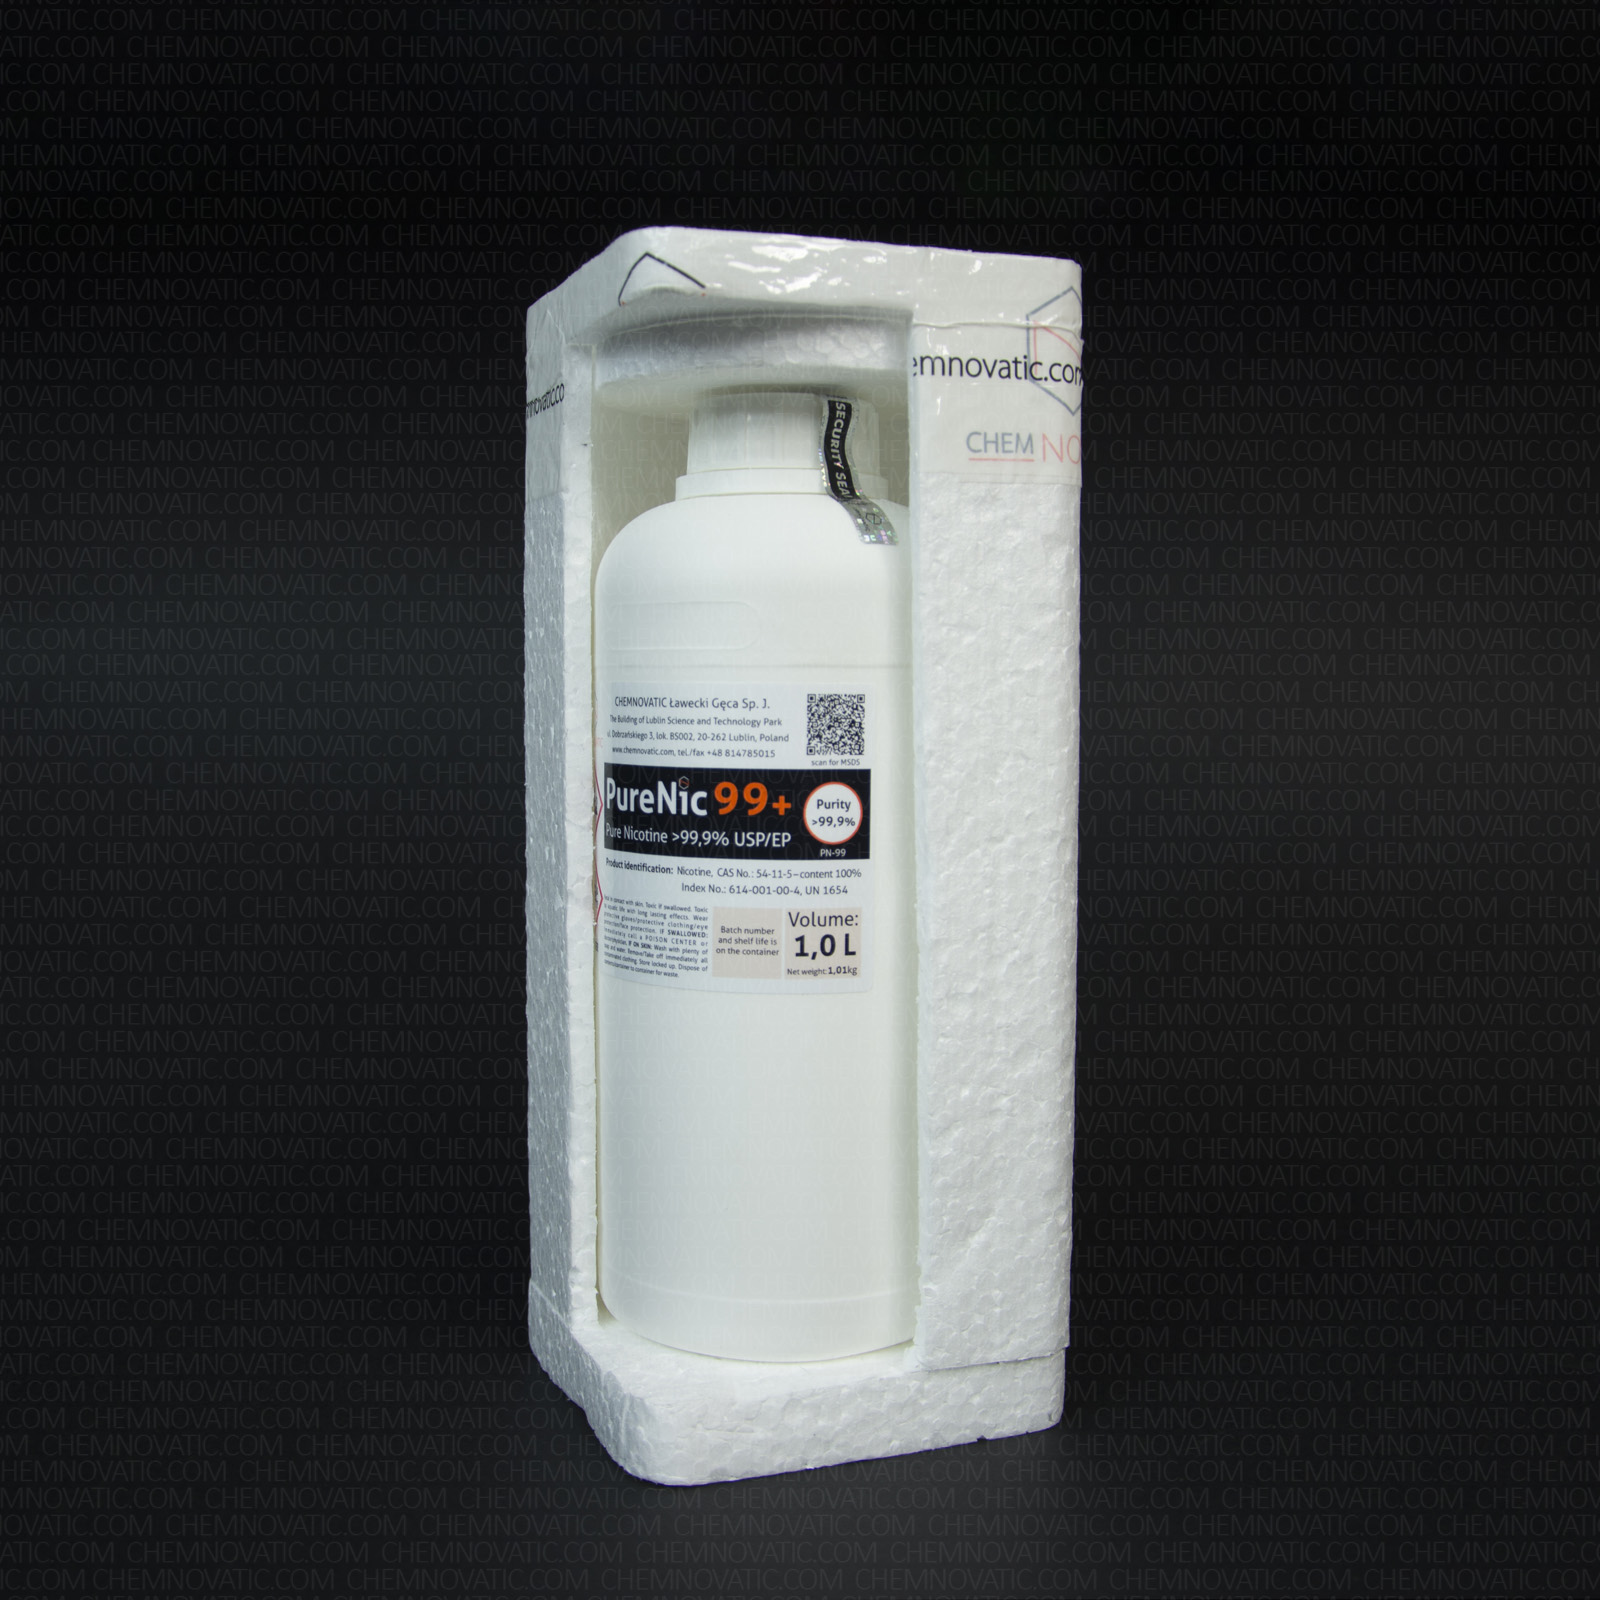 A cutout of complete packaging for 1 liter of PureNic 99+ pure nicotine showing the contents